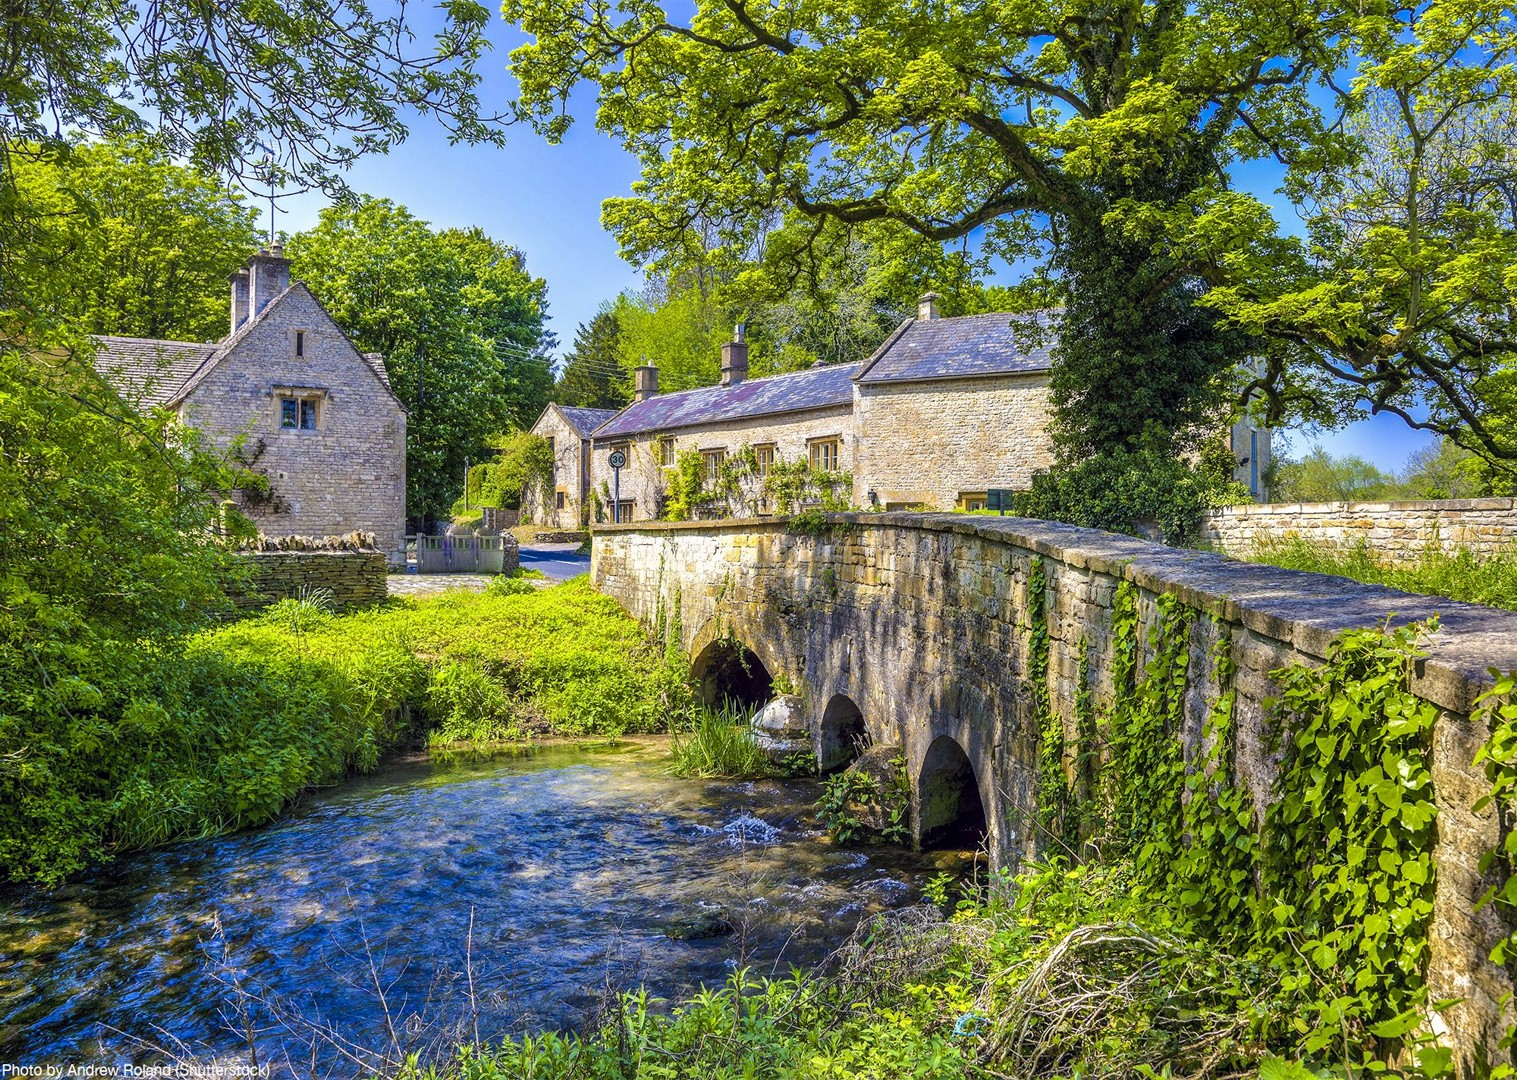 british-rivers-villages-cycling-bike-tour-uk-saddle-skedaddle-cotswolds-bourton.jpg - UK - Cotswolds - Bourton-on-the-Water - Self-Guided Leisure Cycling Holiday - Leisure Cycling